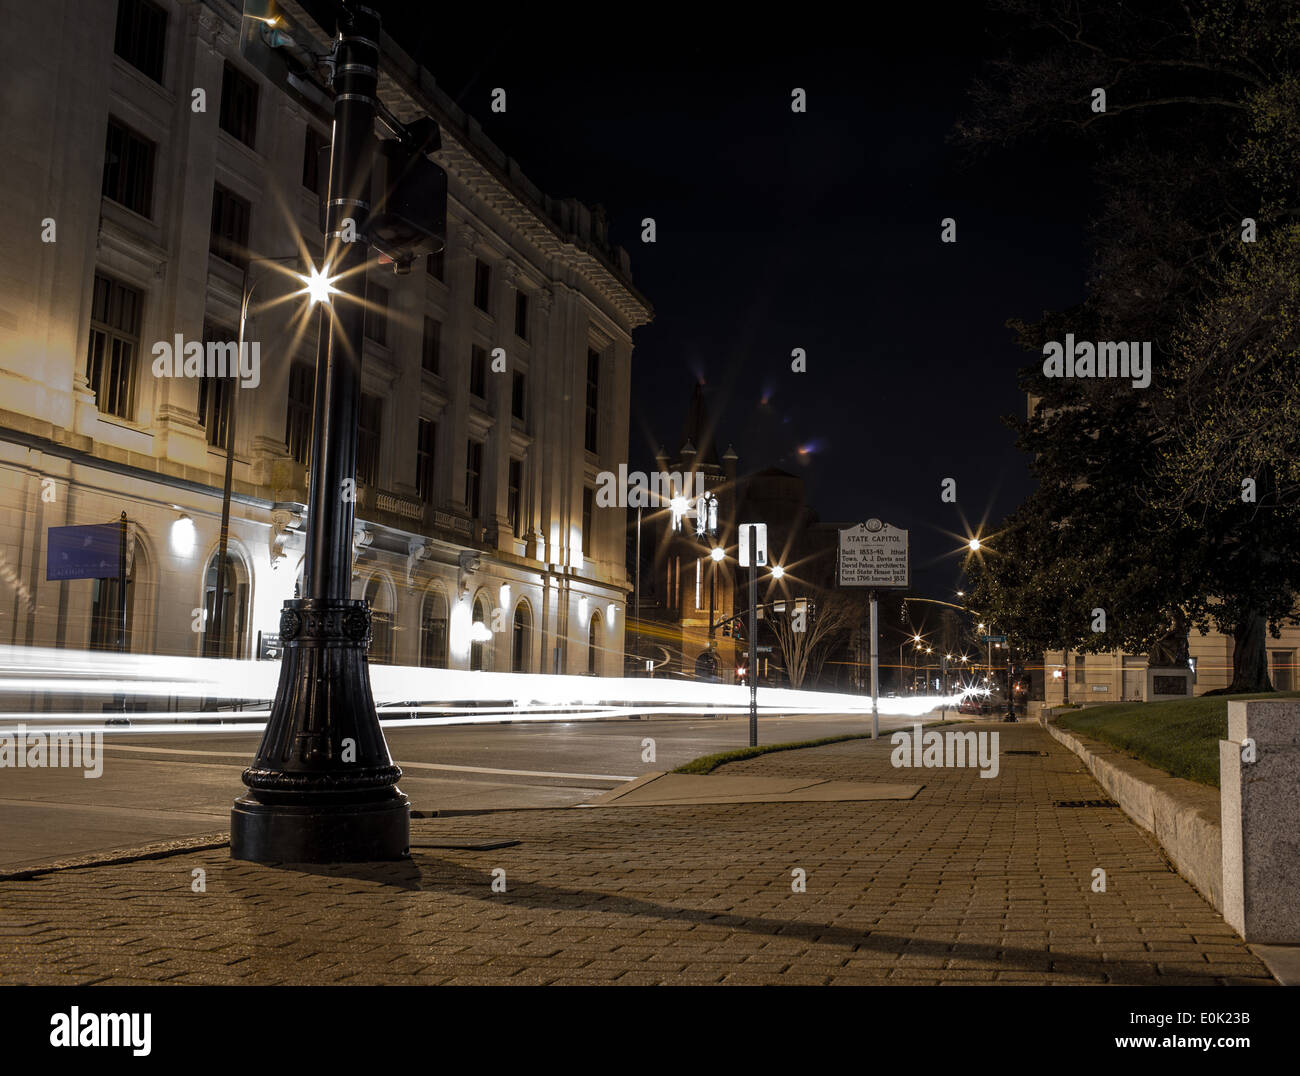 Downtown City Scape - Stock Image